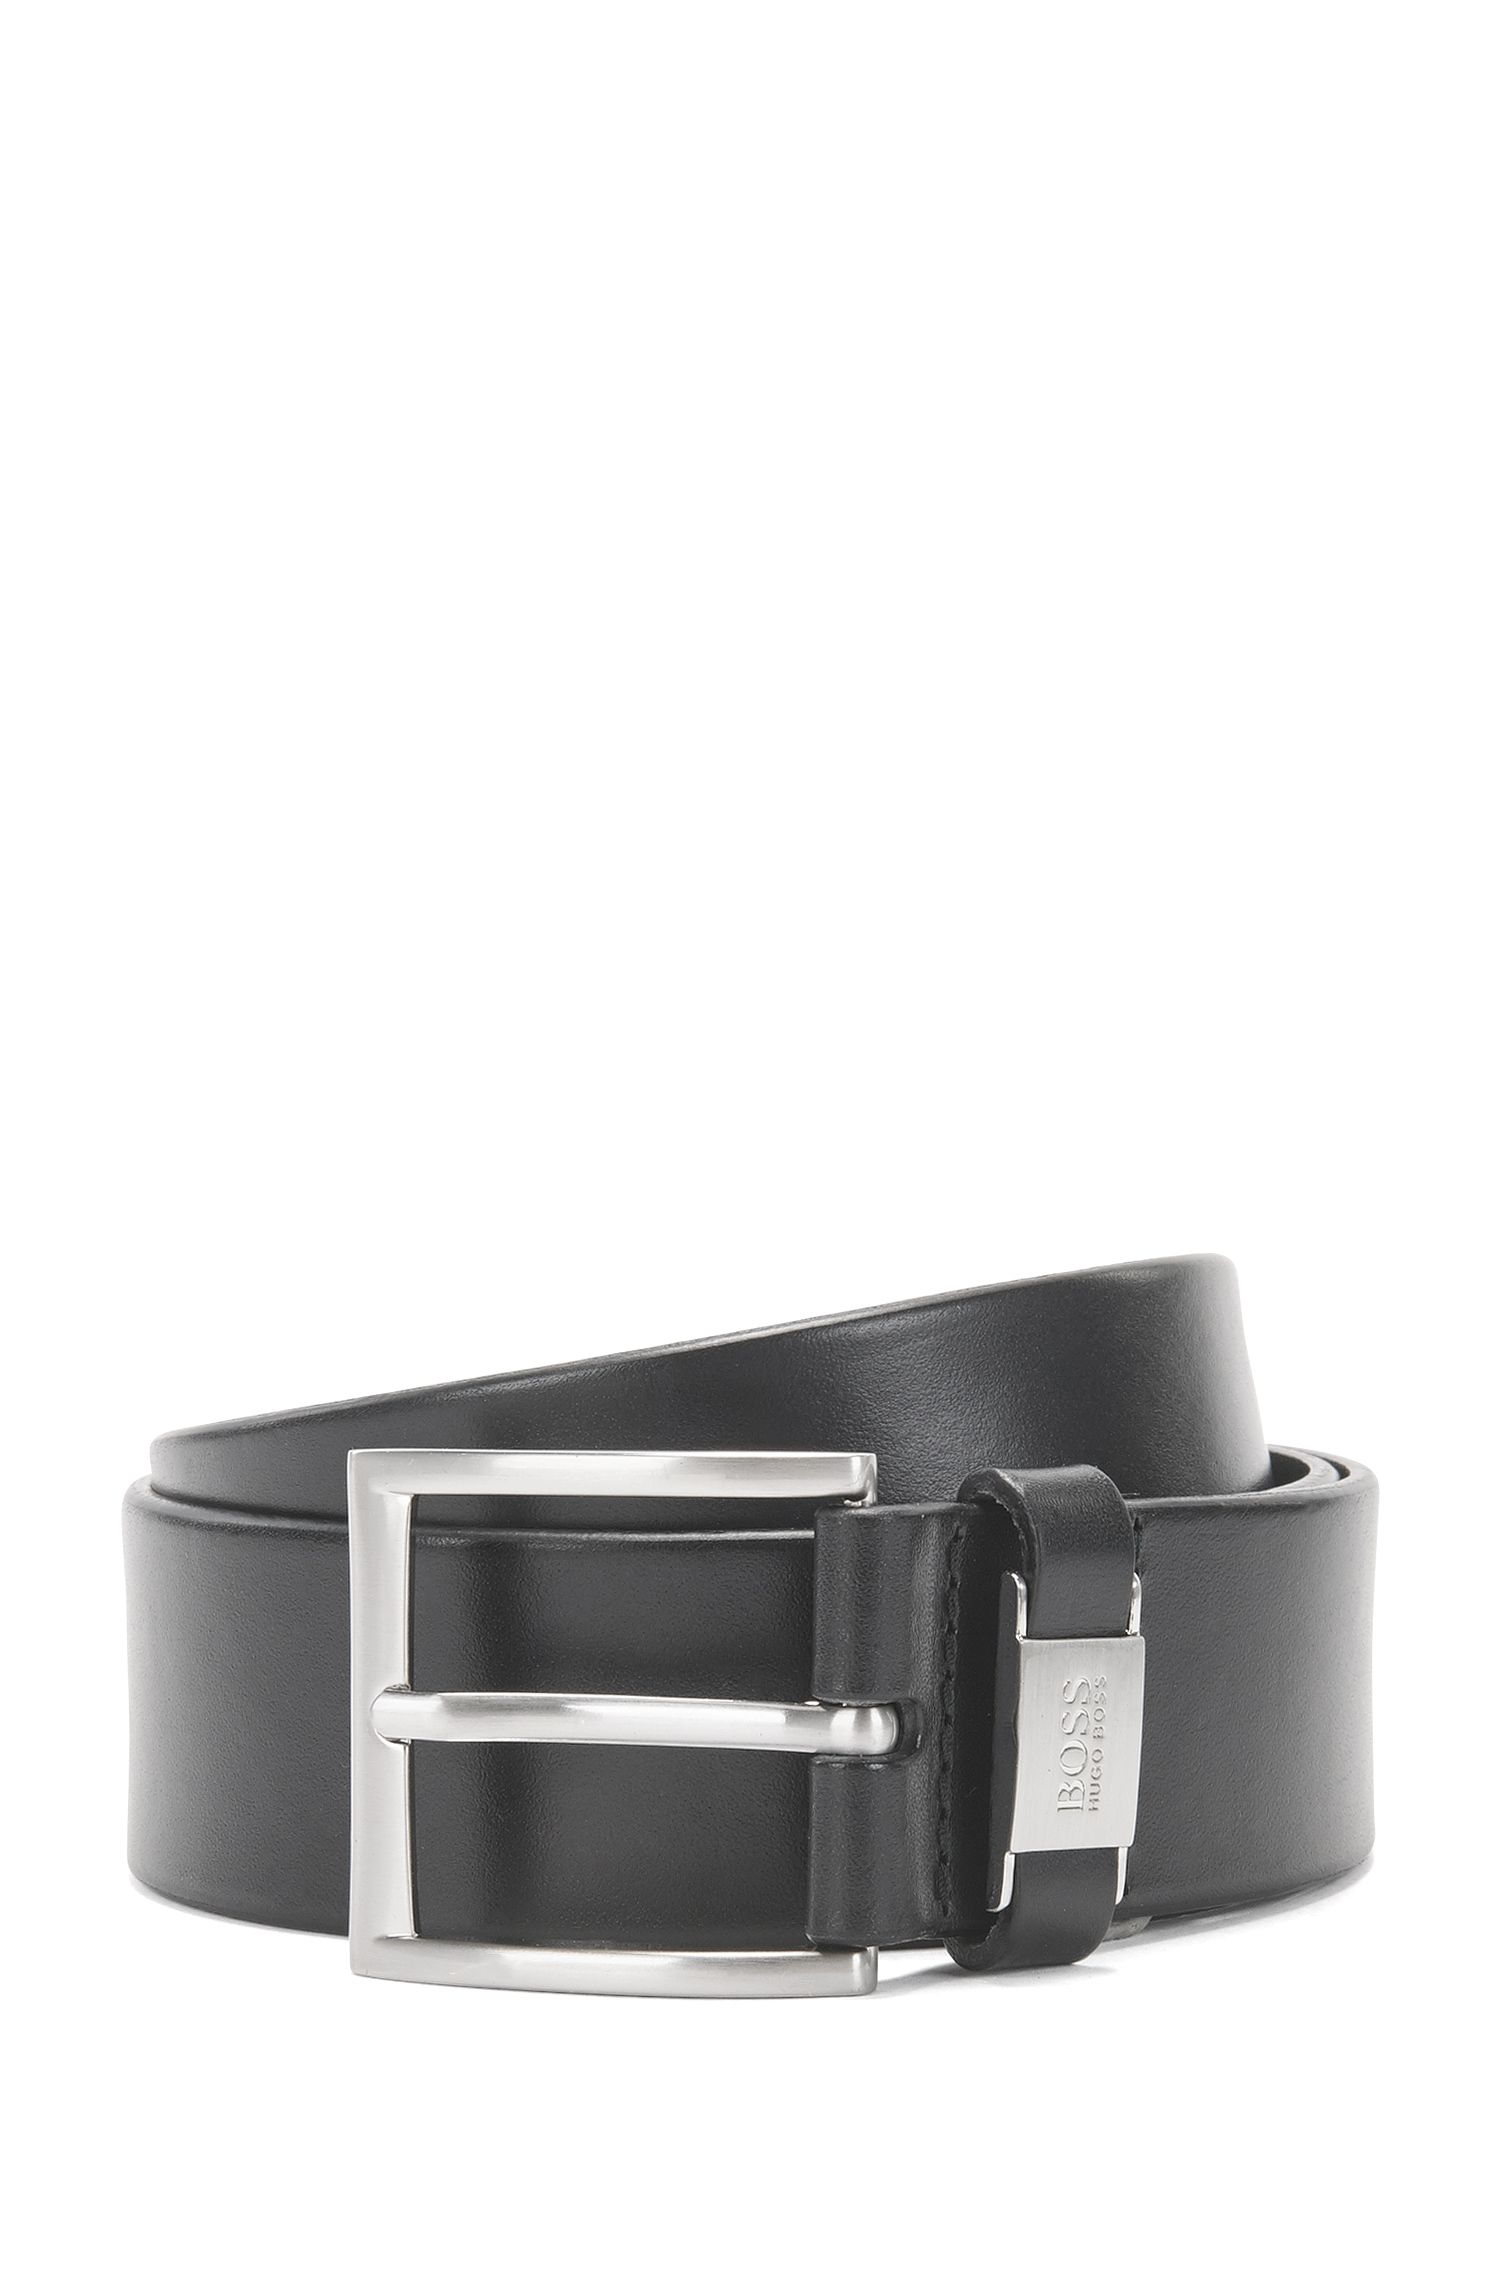 Leather belt with metal-trimmed keeper